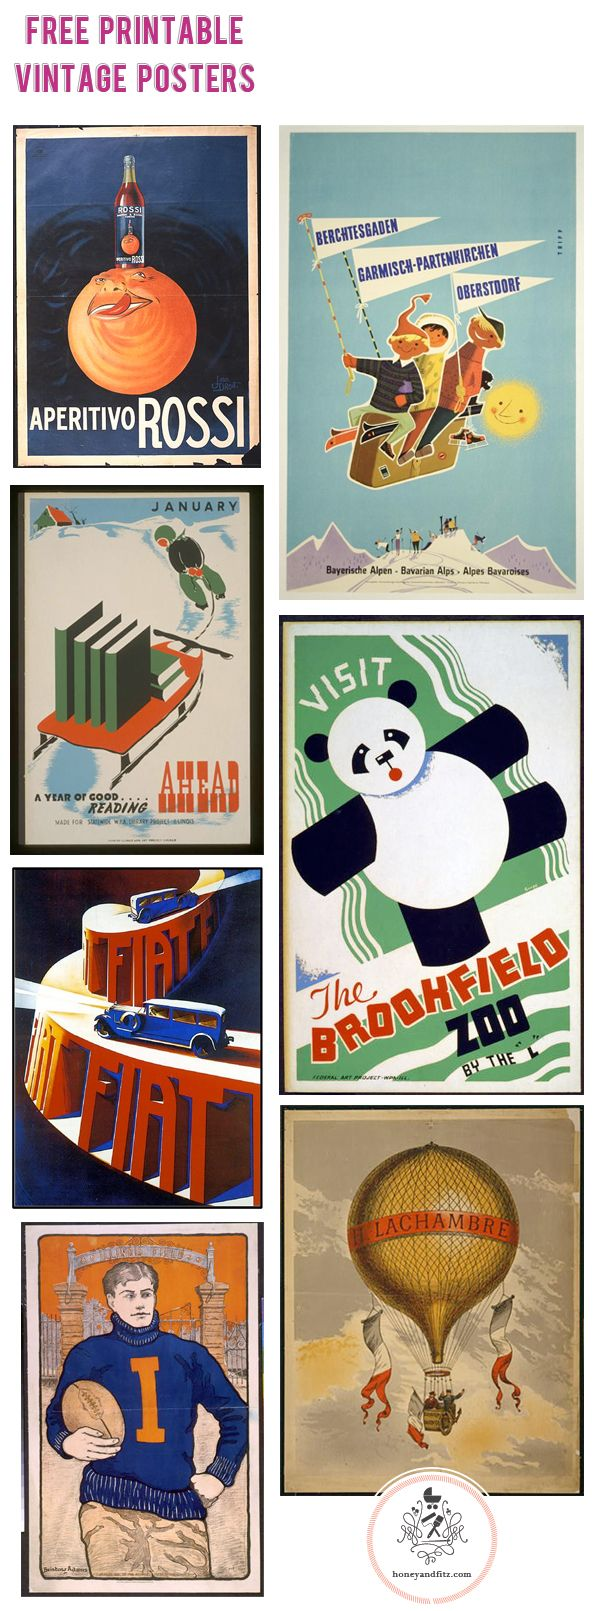 Honey-and-Fitz-Free-Printable-Vintage-Posters